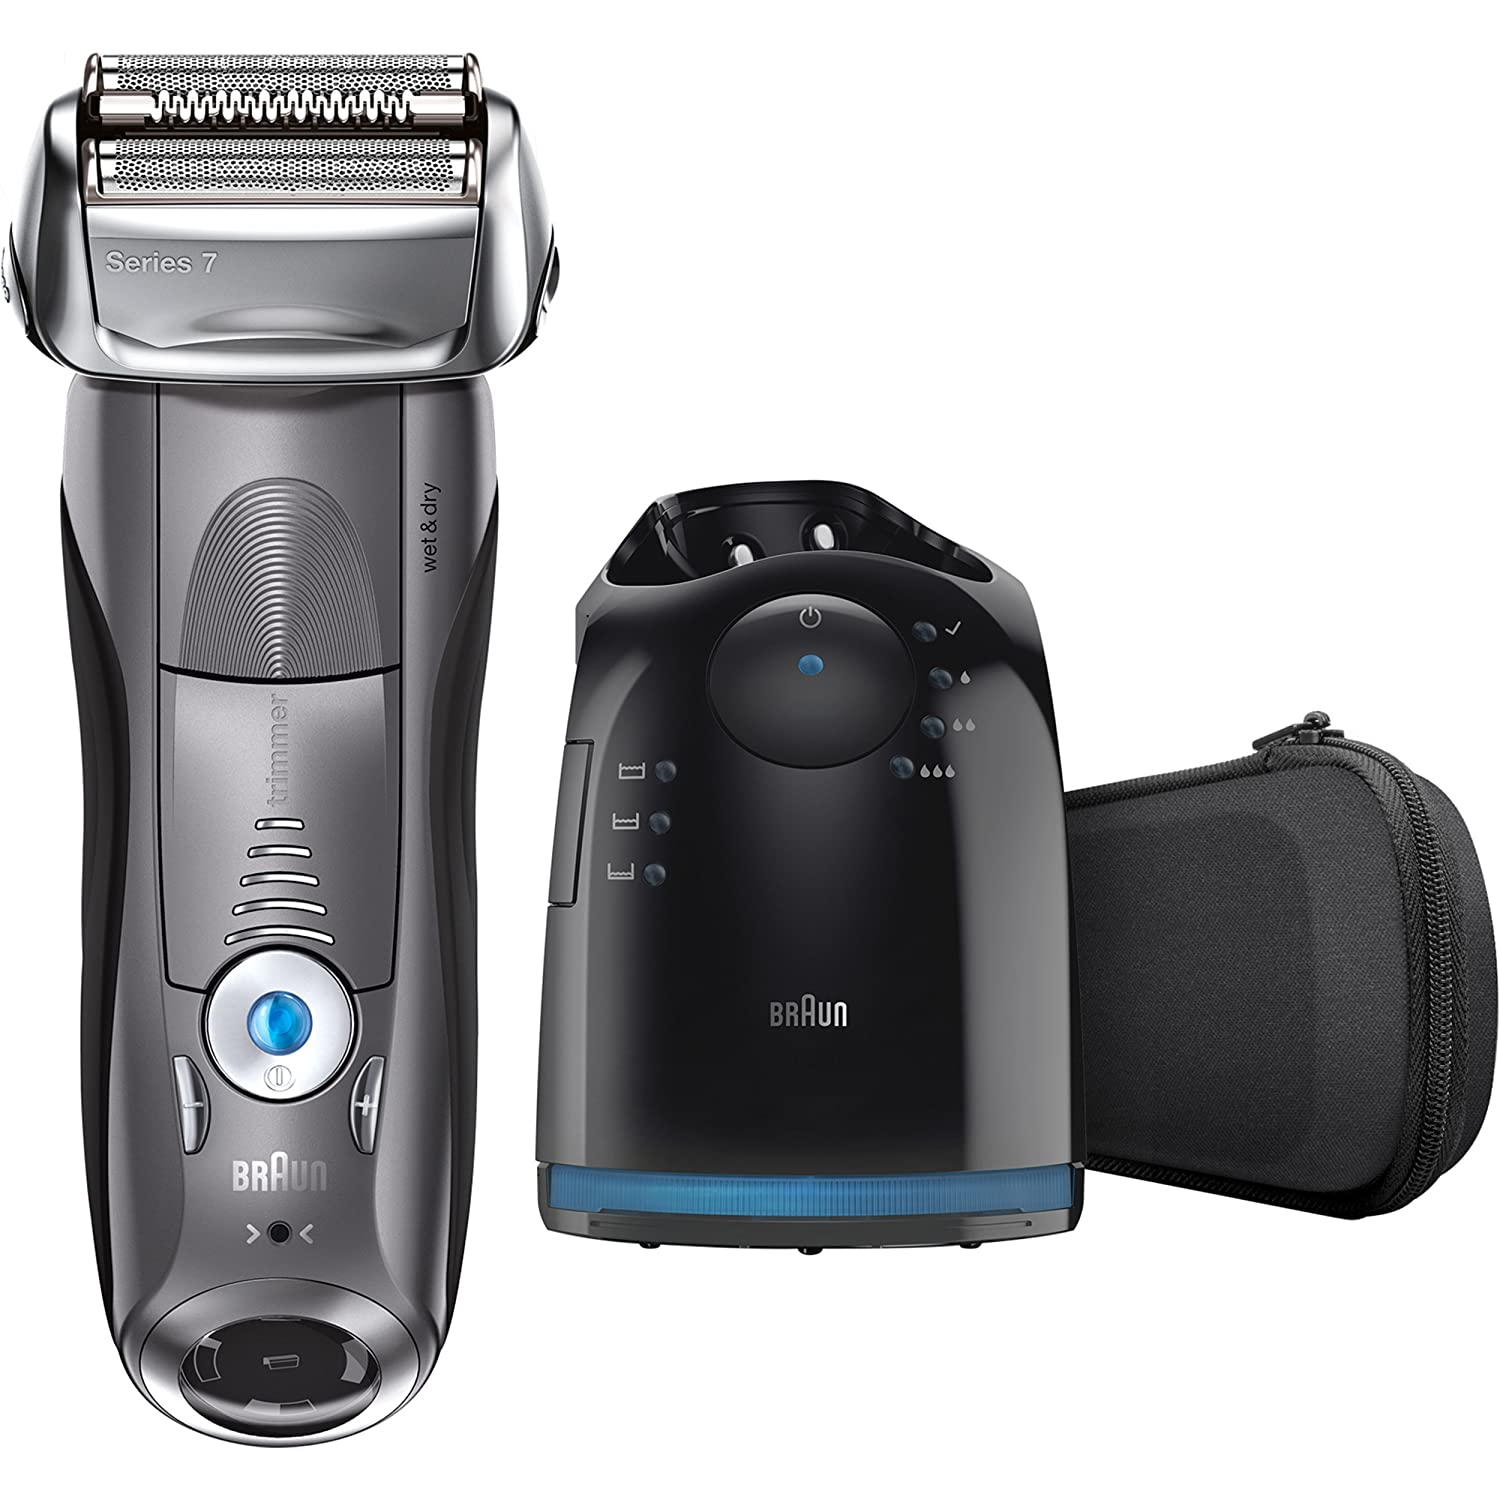 $208.99(was $299.99) Braun 7865CC Series 7 Wet & Dry Premium Electric Shaver with Clean & Charge System, Grey